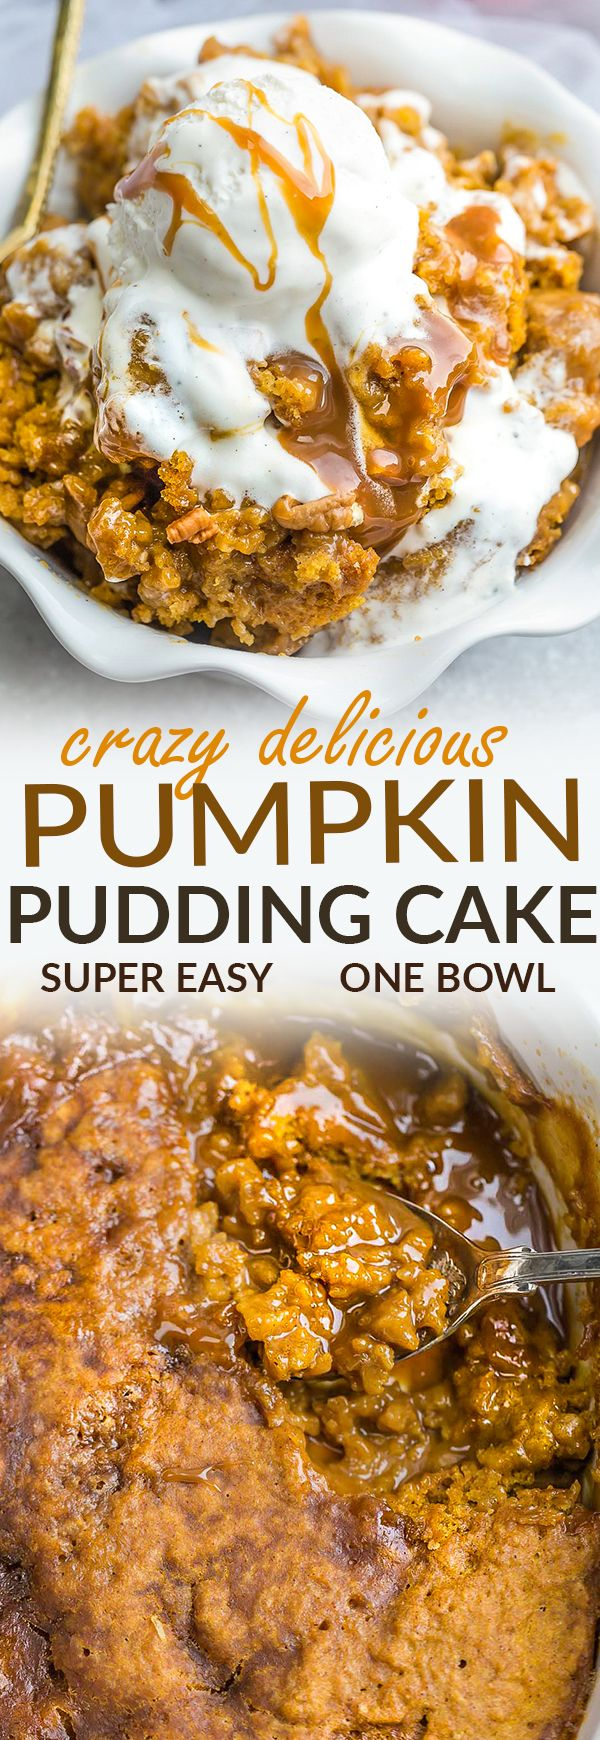 Pumpkin Pudding Cake - the perfect easy dessert for fall. Best of all, comes together easily in just one bowl with just 10 minutes of prep time. Full of cozy warm pumpkin pie spices, cinnamon and gooey pumpkin. It's like a crossover between a molten hot l (Easy Desserts)